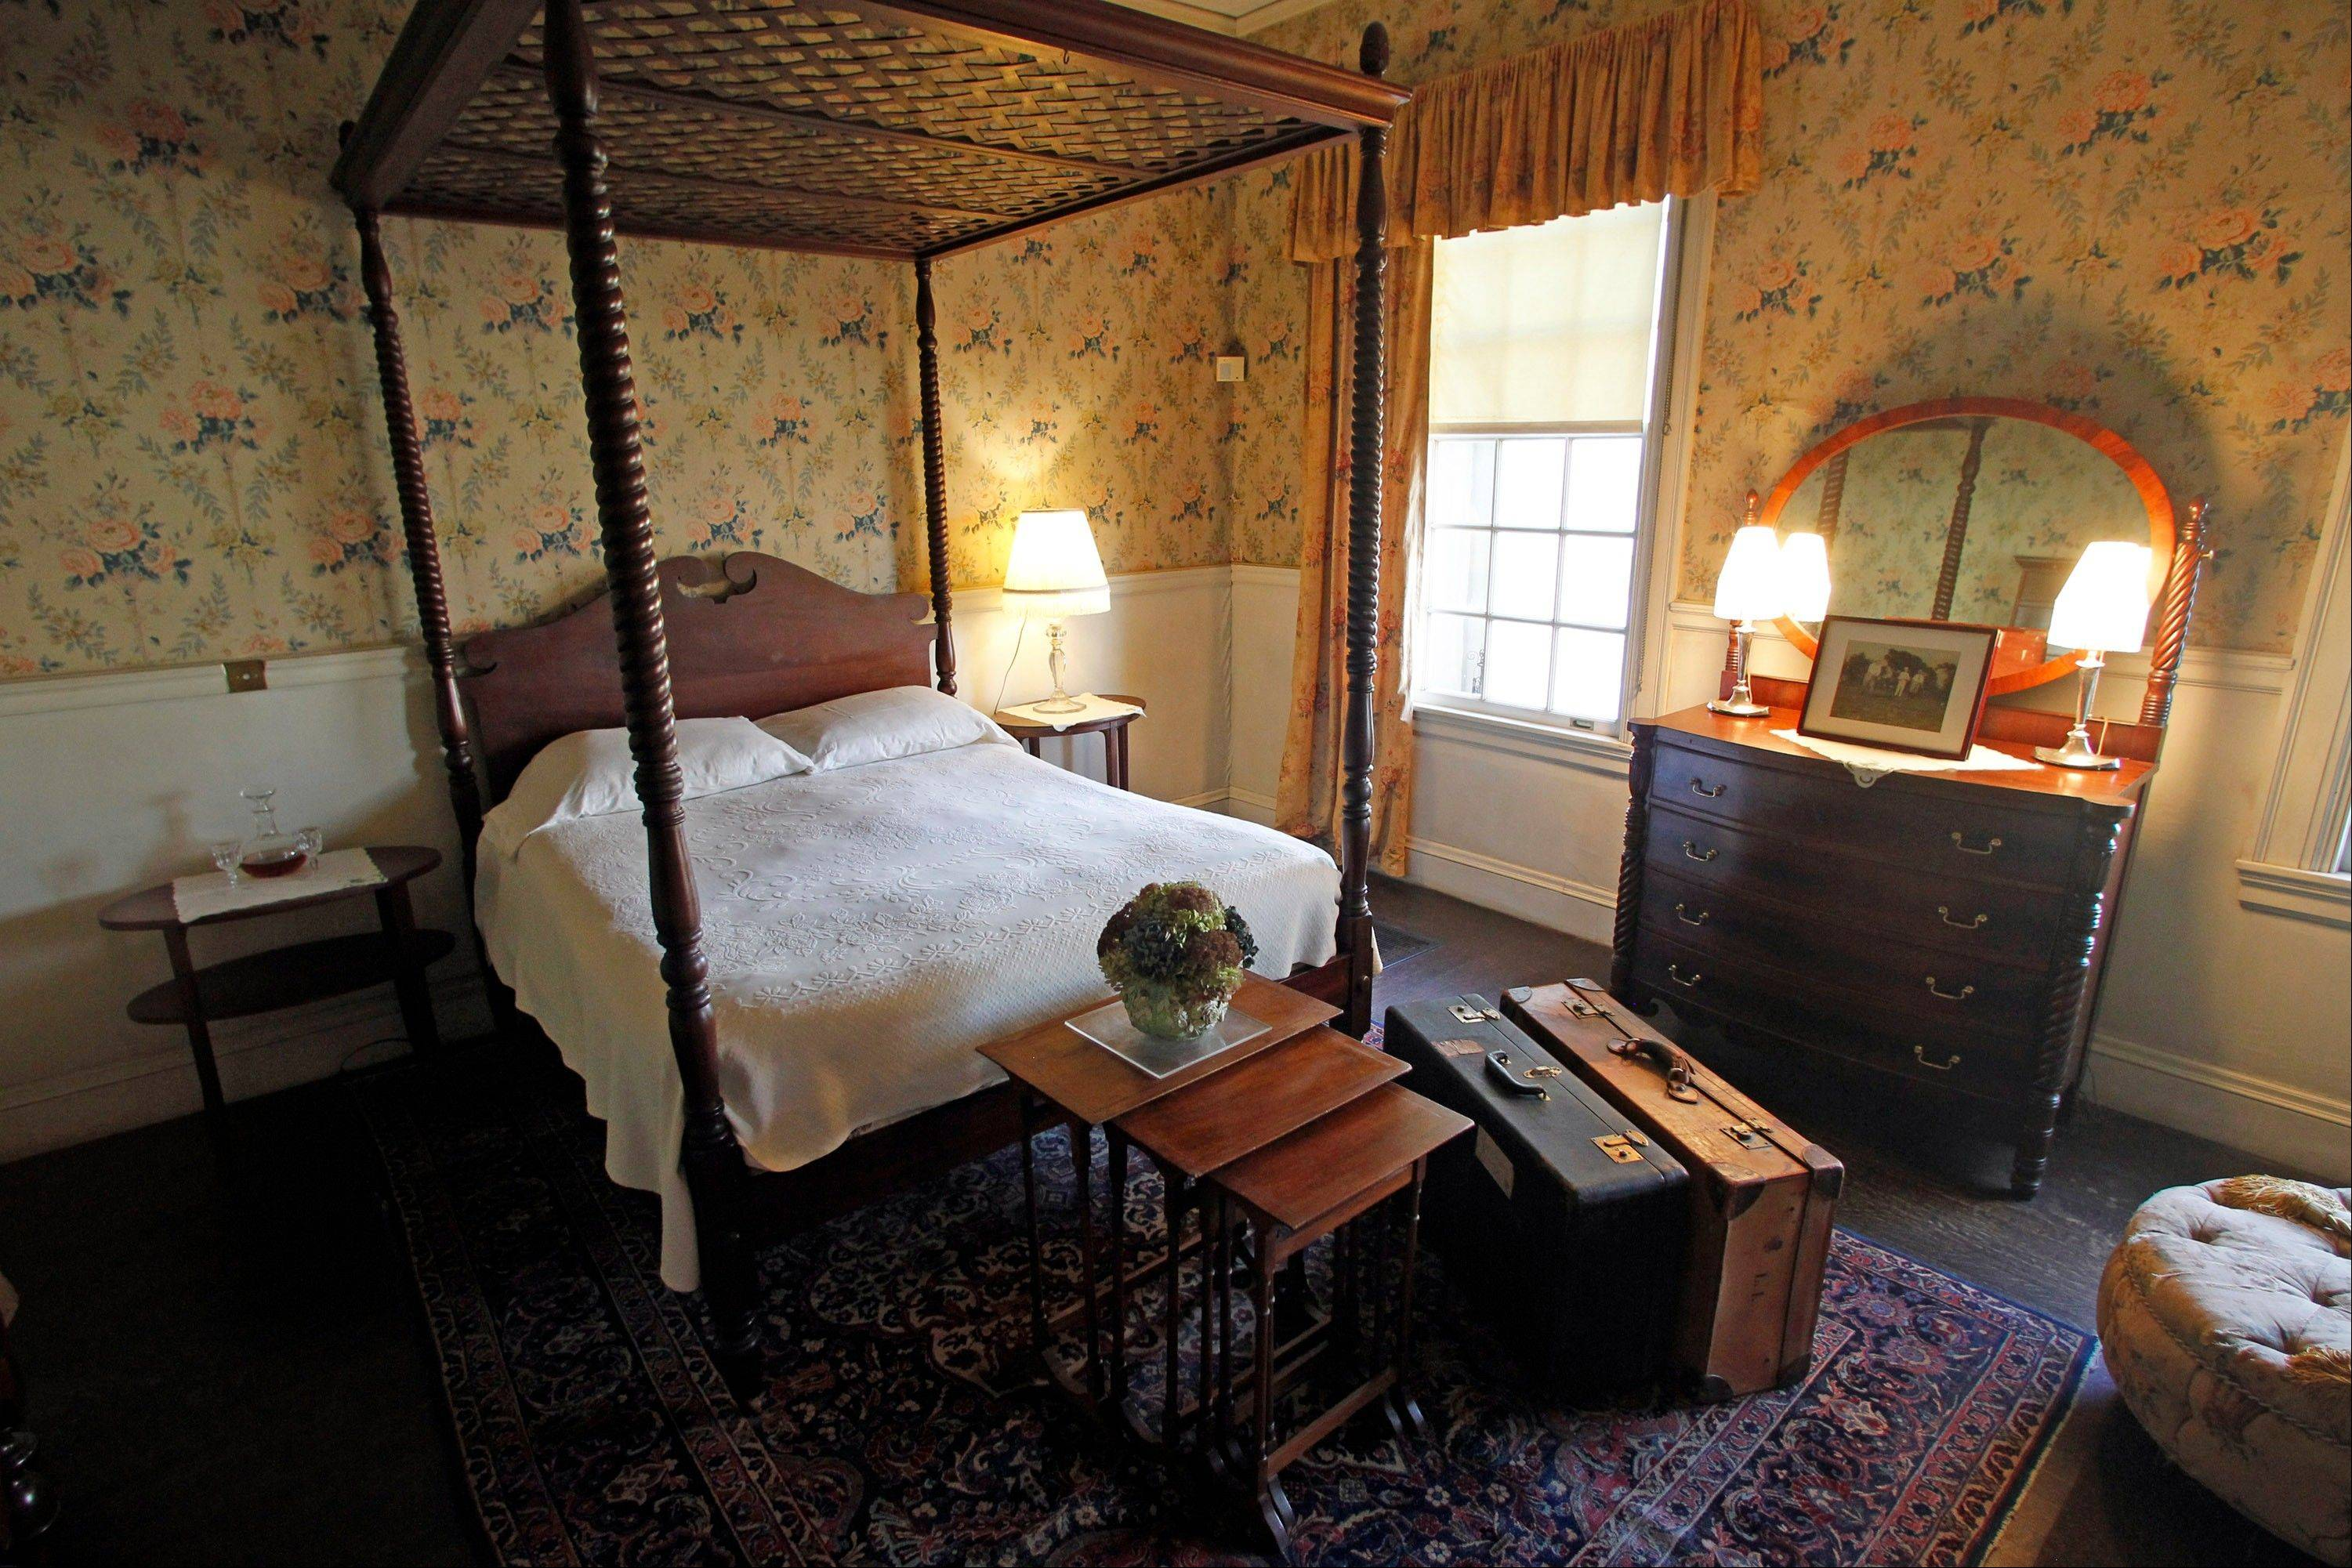 The Taft bedroom at the Robert Todd Lincoln mansion Hildene in Manchester, Vt.